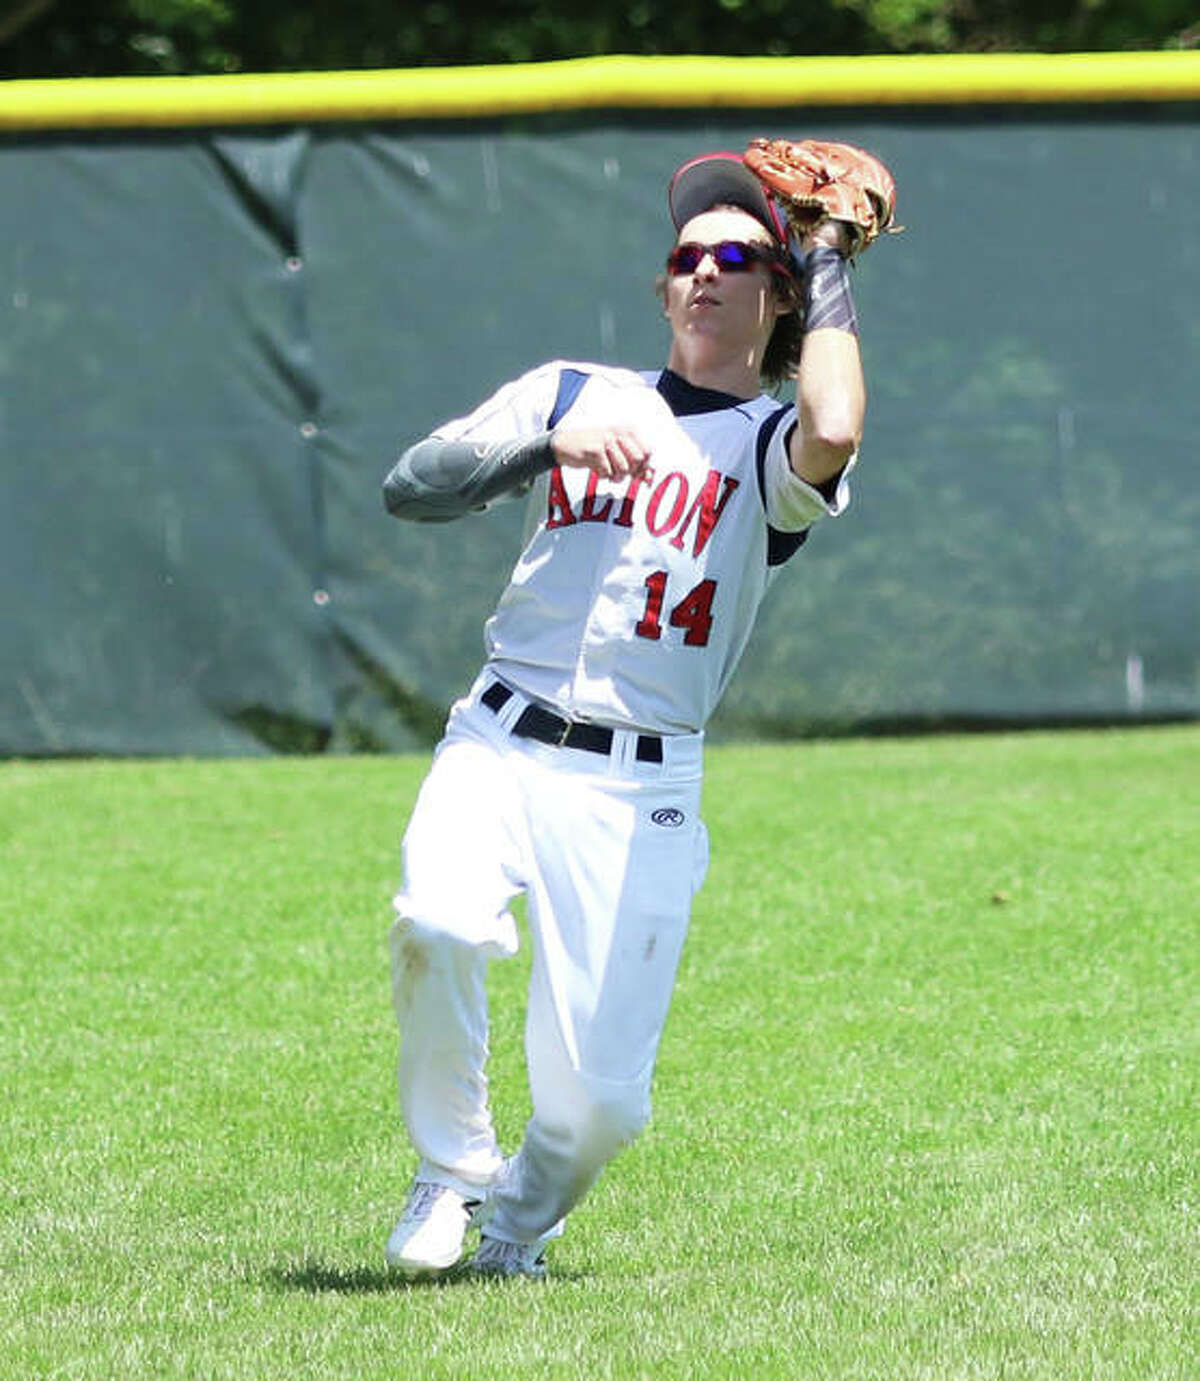 Alton outfielder Preston Schepers had a double in his team's 12-8 win over Lafayette, Indiana Sunday in the John Hayes Best of the Midwest Tournament in Terre Haute, Ind. Schepers is shown making a catch against Washington, Mo. in 2020 action.